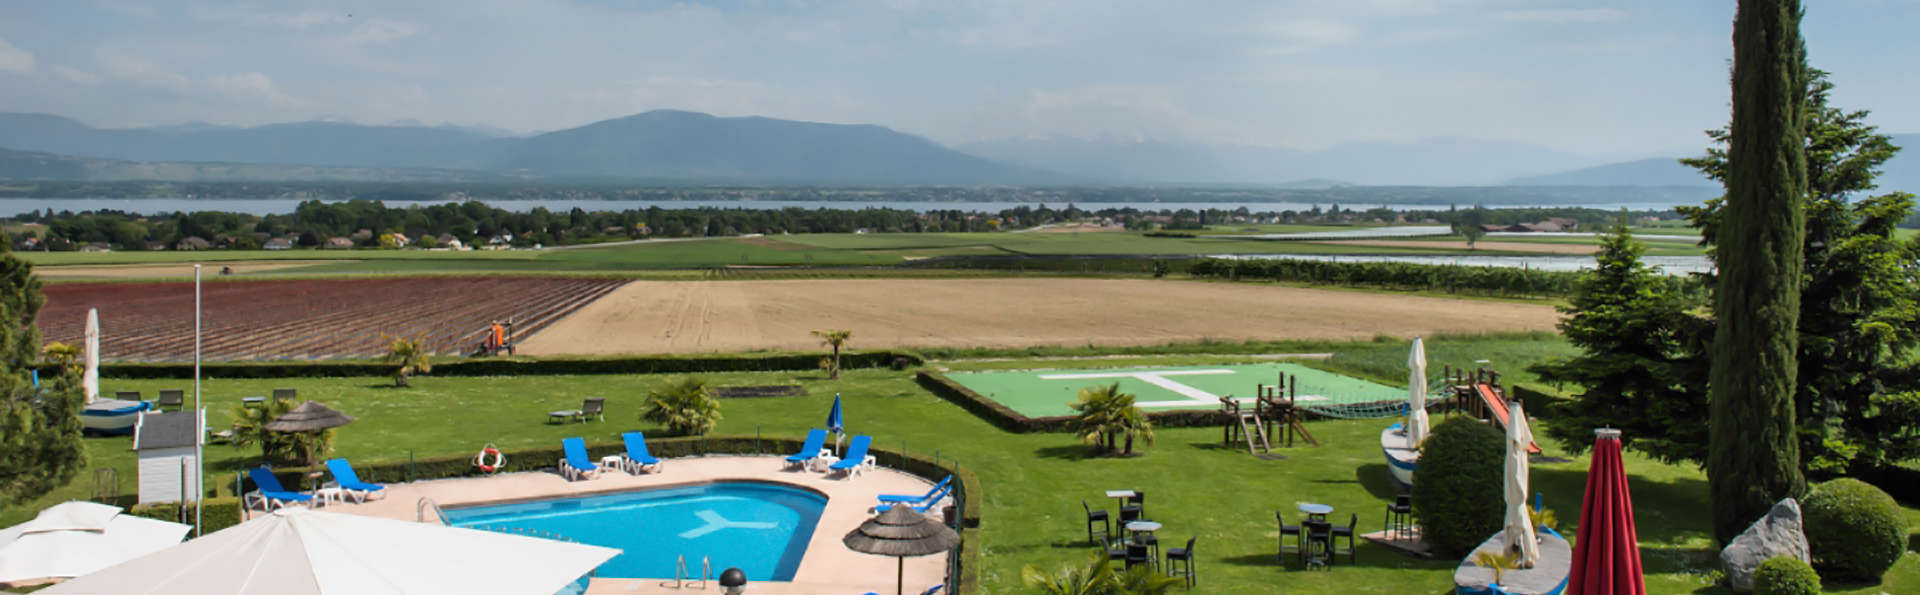 Best Western Hotel Chavannes-de-Bogis - Edit_View.jpg